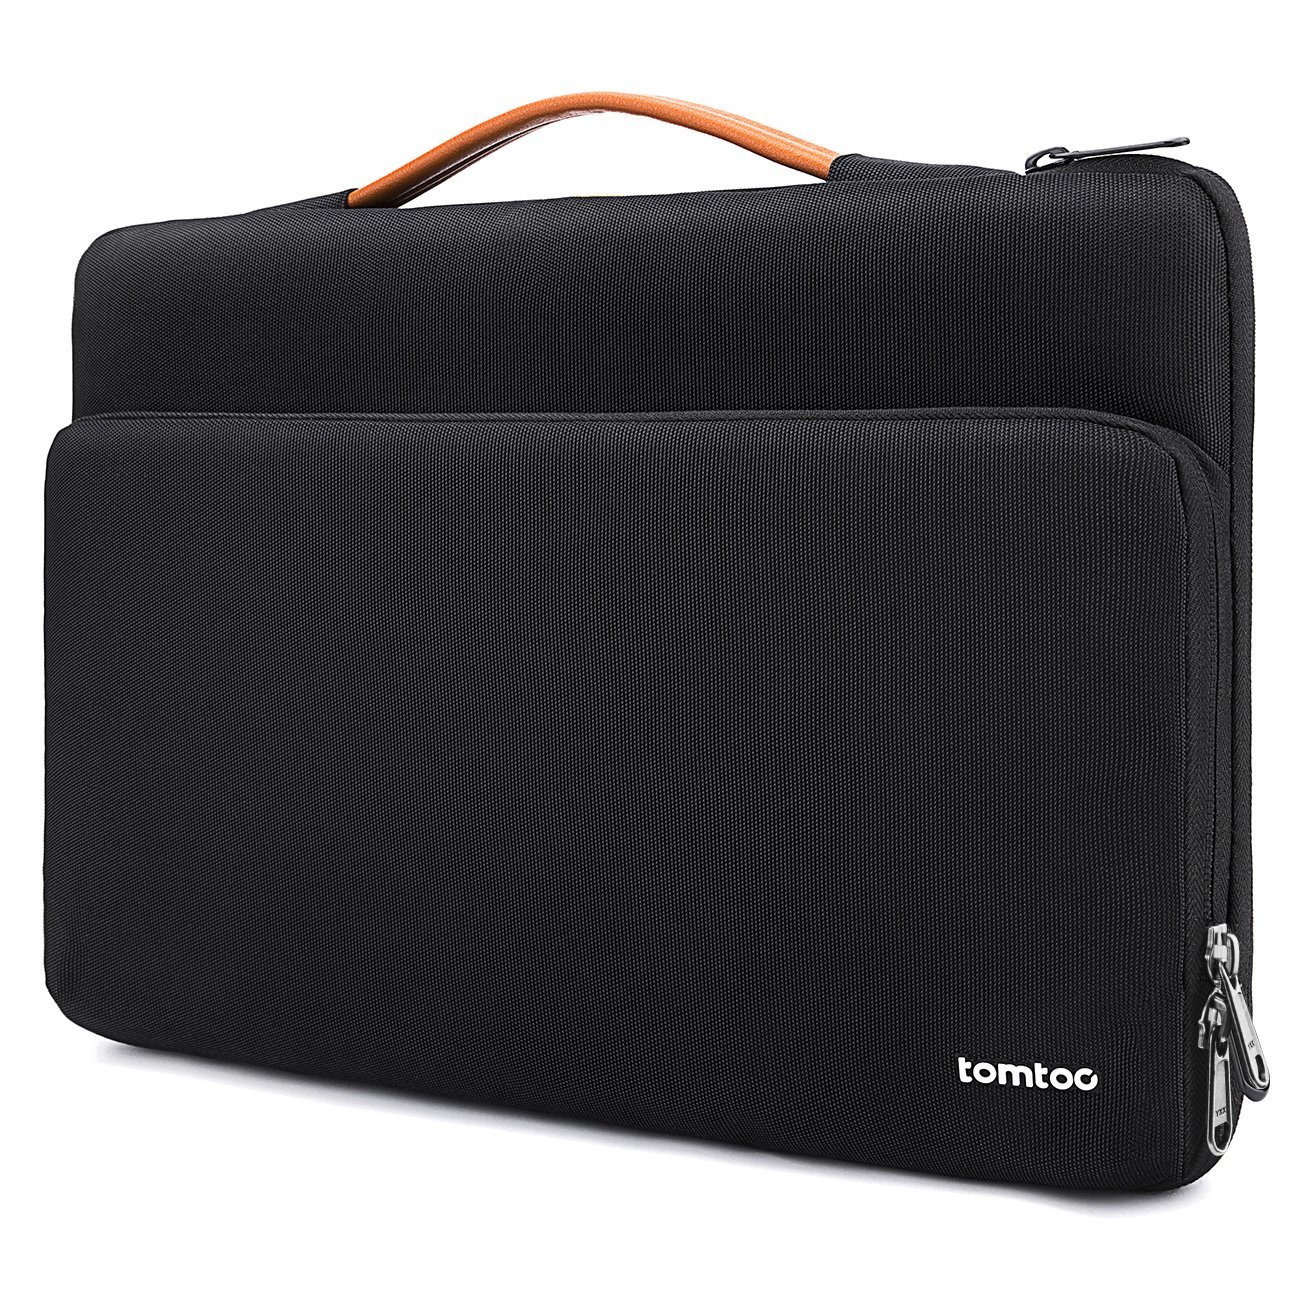 tomtoc 360 Protective Laptop Carrying Case for 12.3 Inch Surface Pro X/7/6/5/4, New MacBook Air 13-inch with Retina Display A1932, 13 New MacBook Pro USB-C A2159 A1989 A1706 A1708, Accessory Bag by tomtoc